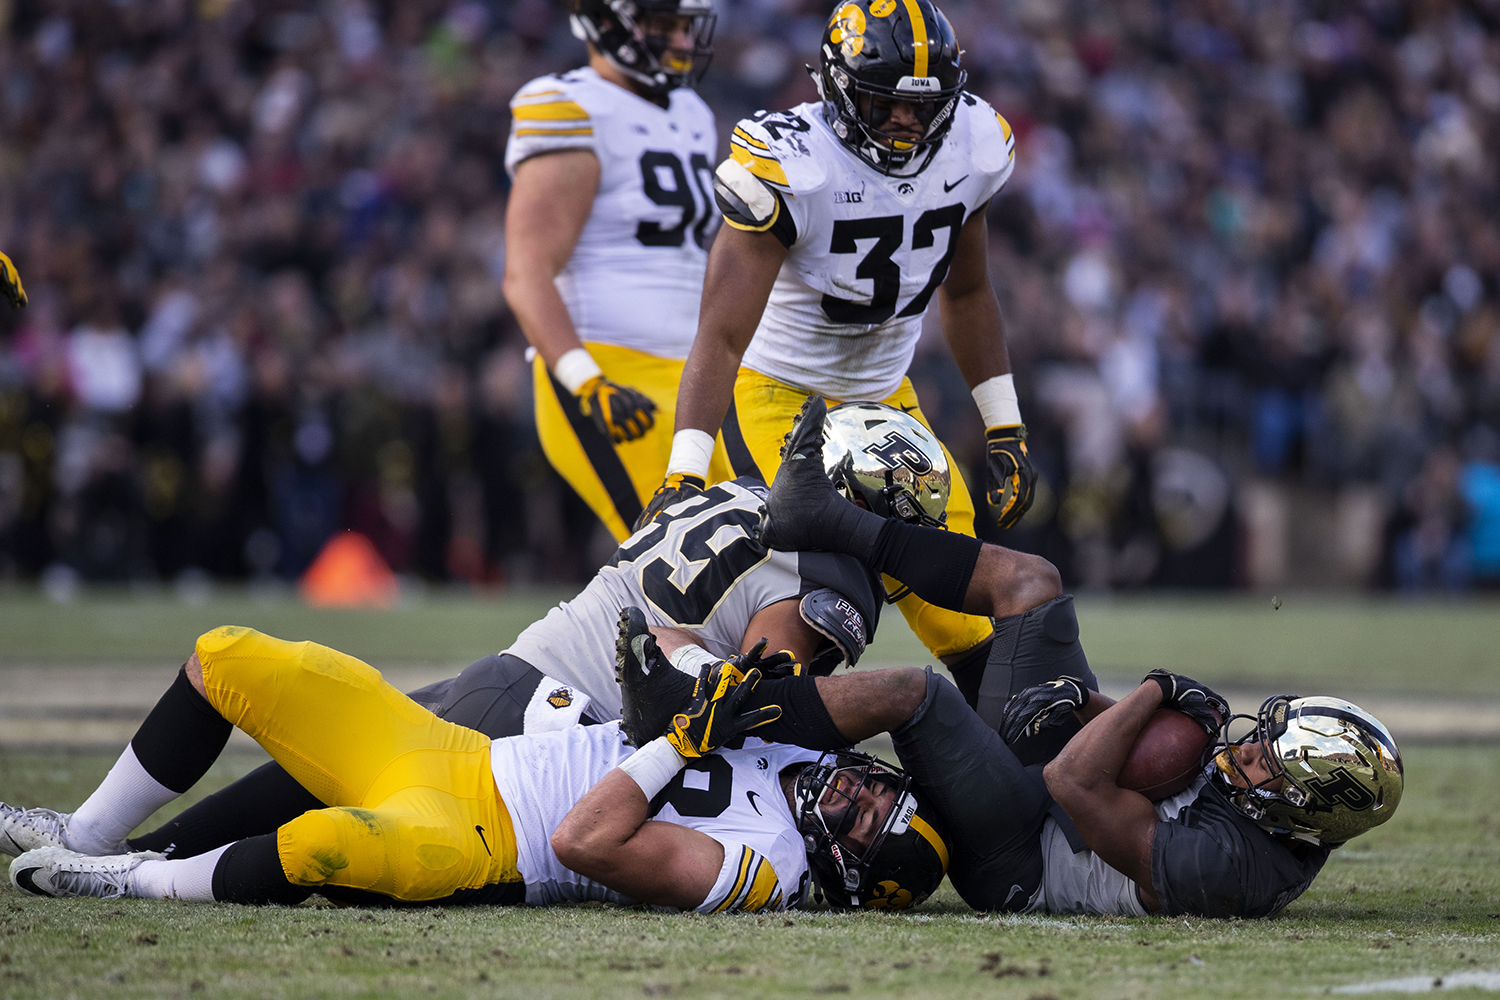 Iowa+running+back+Toren+Young+%2828%29+is+toppled+by+Purdue+offense+during+the+Iowa%2FPurdue+game+at+Ross-Ade+Stadium+in+West+Lafayette%2C+Ind.+The+Boilermakers+defeated+the+Hawkeyes%2C+38-36%2C+with+a+last+second+field+goal.+